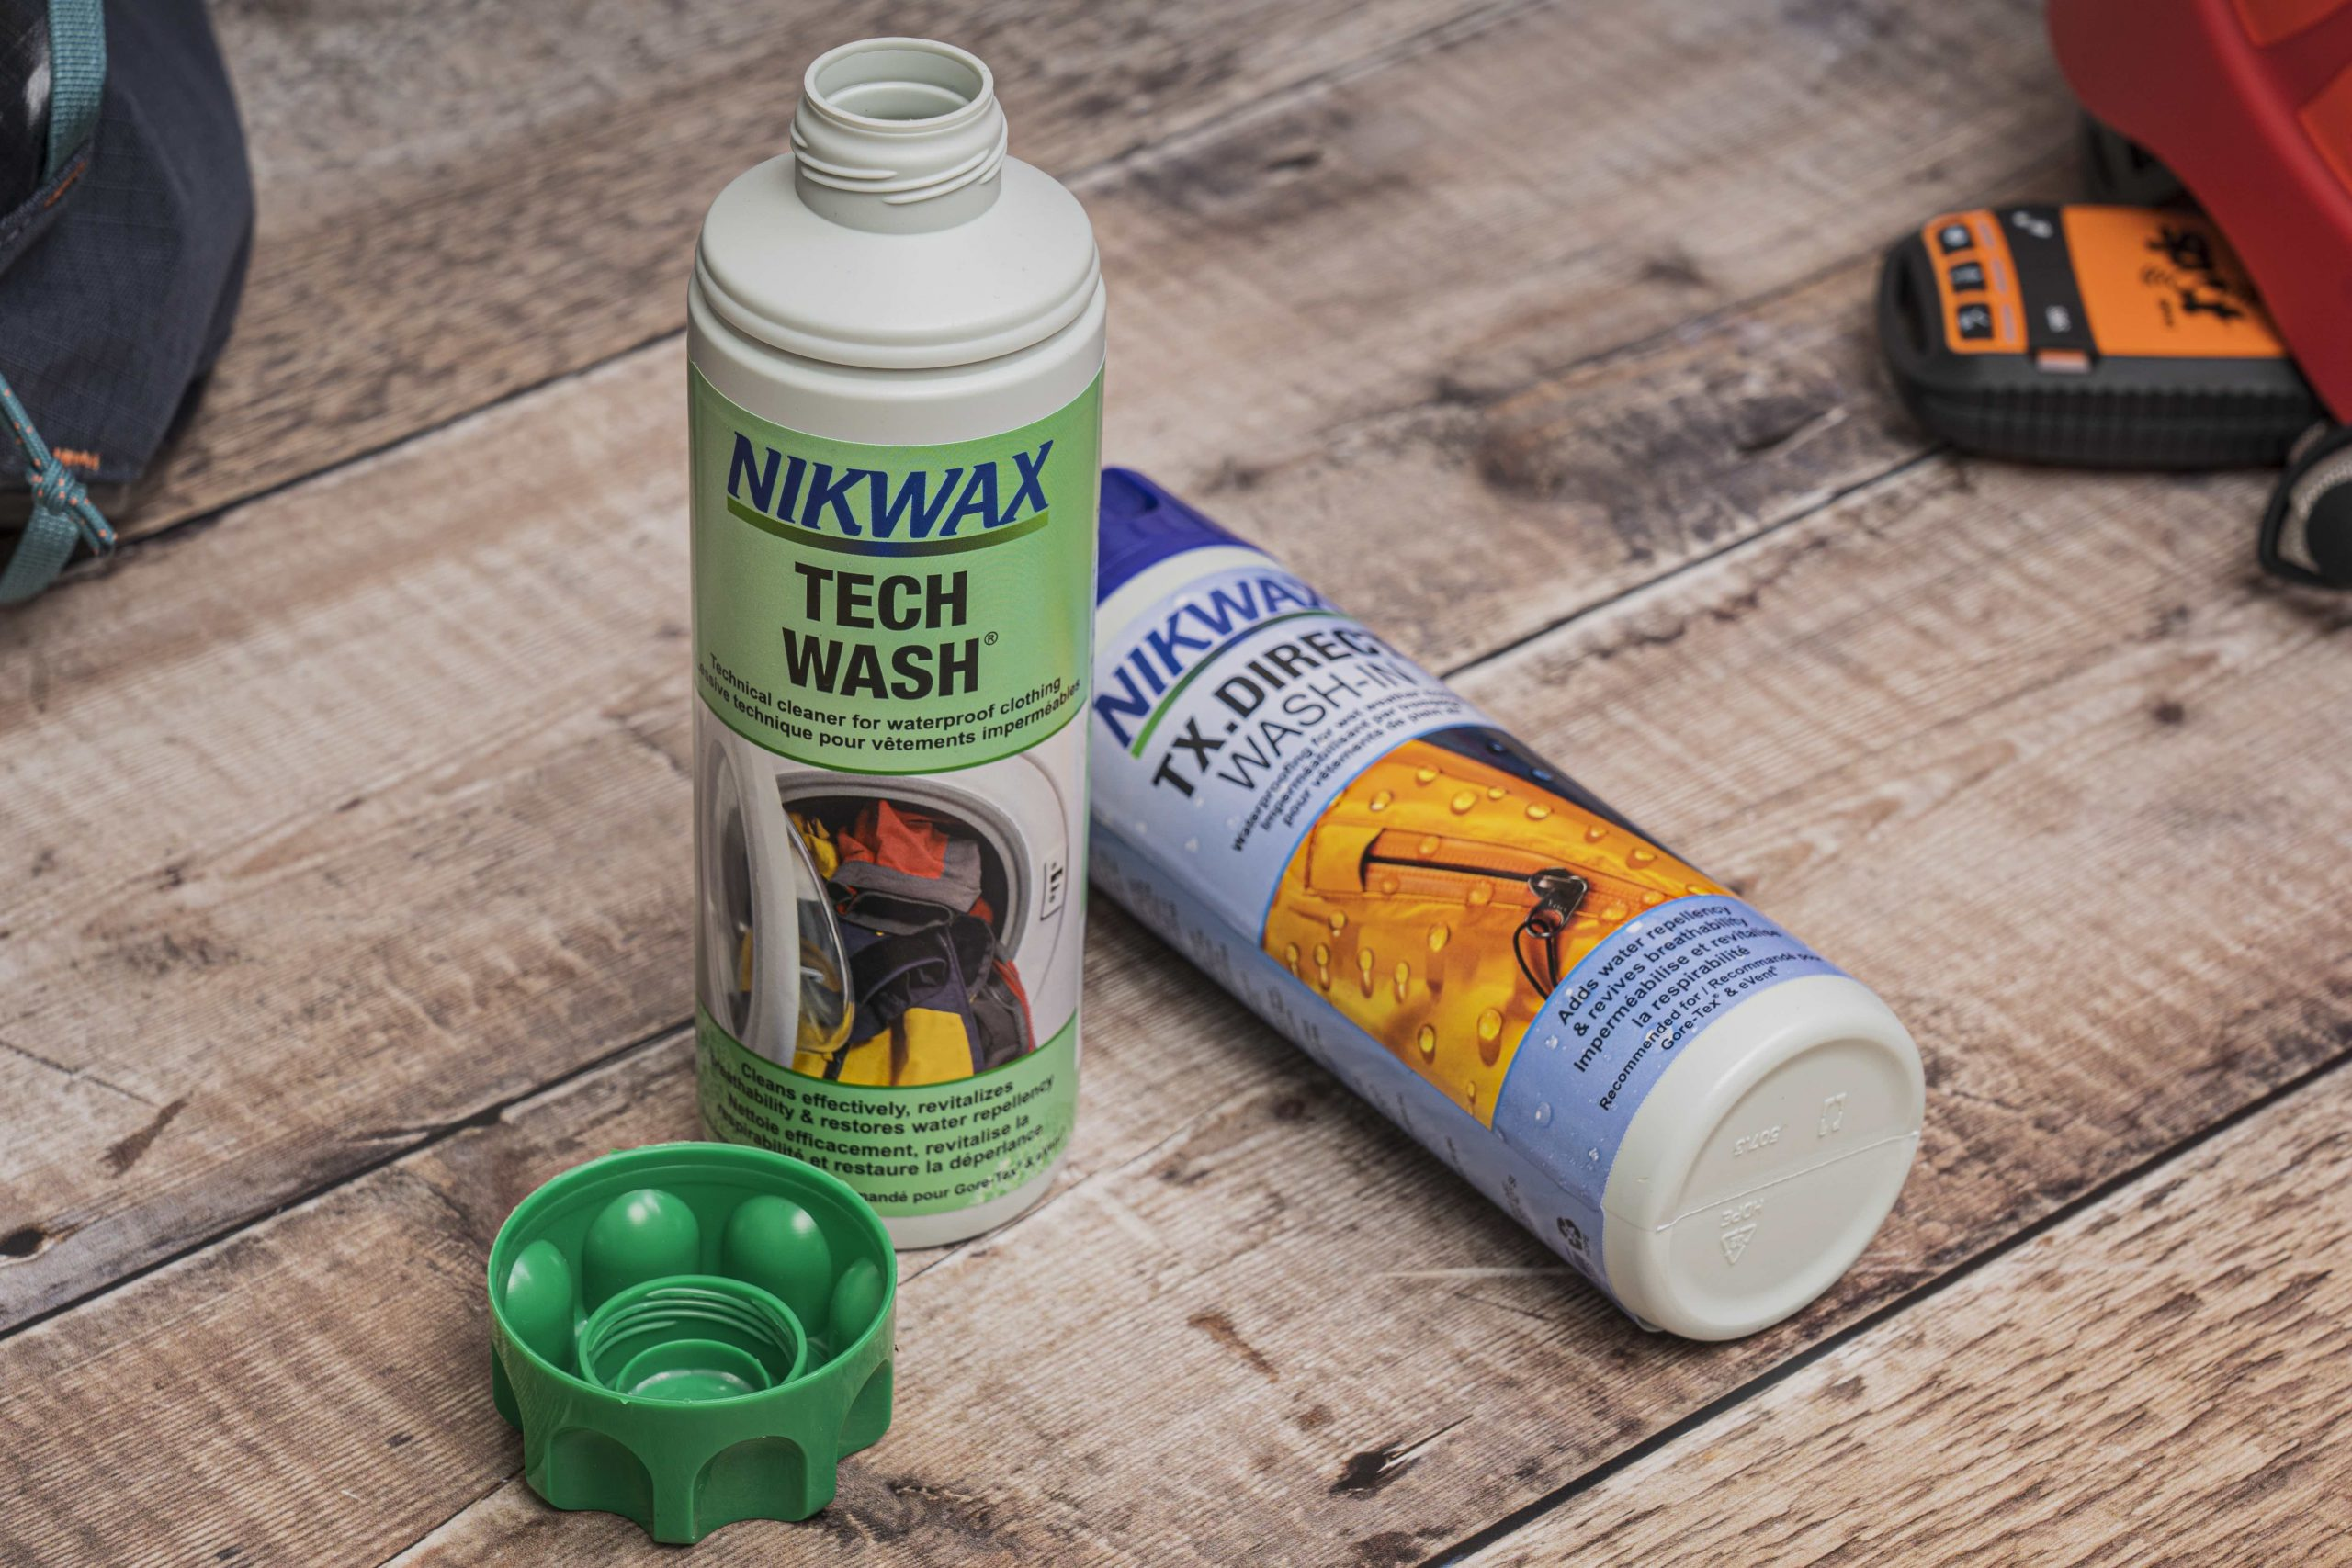 Nikwax Tech Wash comes out top in independent test